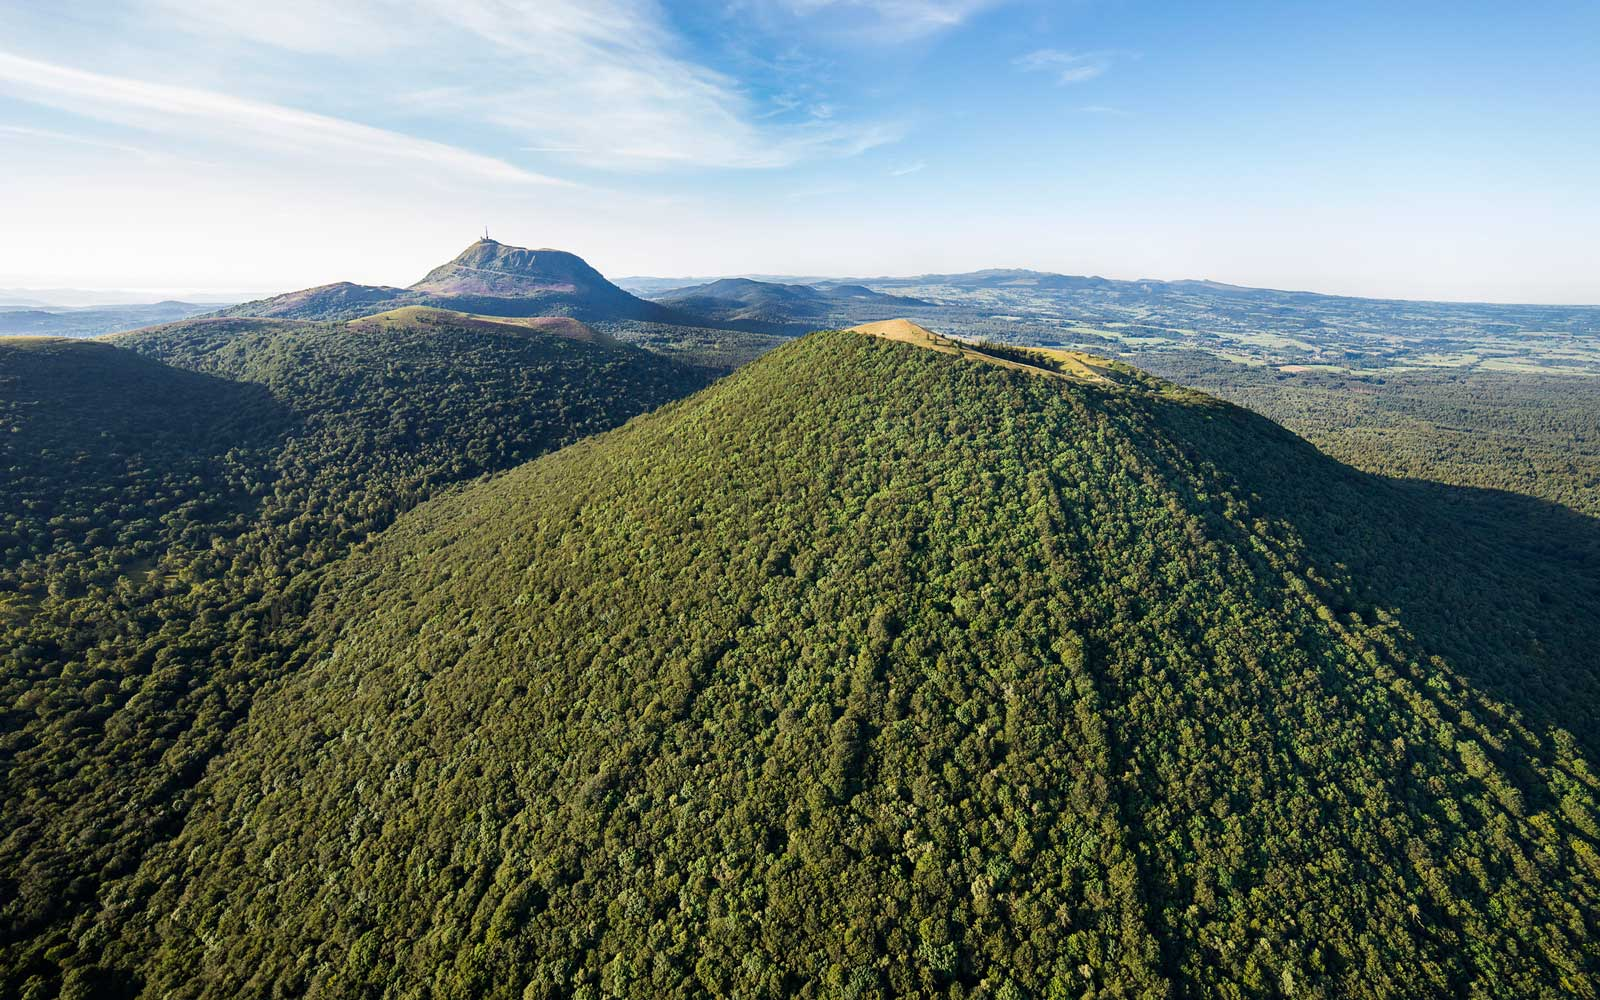 France, Puy de Dome, the Regional Natural Park of the Volcanoes of Auvergne, Chaine des Puys, Orcines, the crater of Puy Pariou volcano